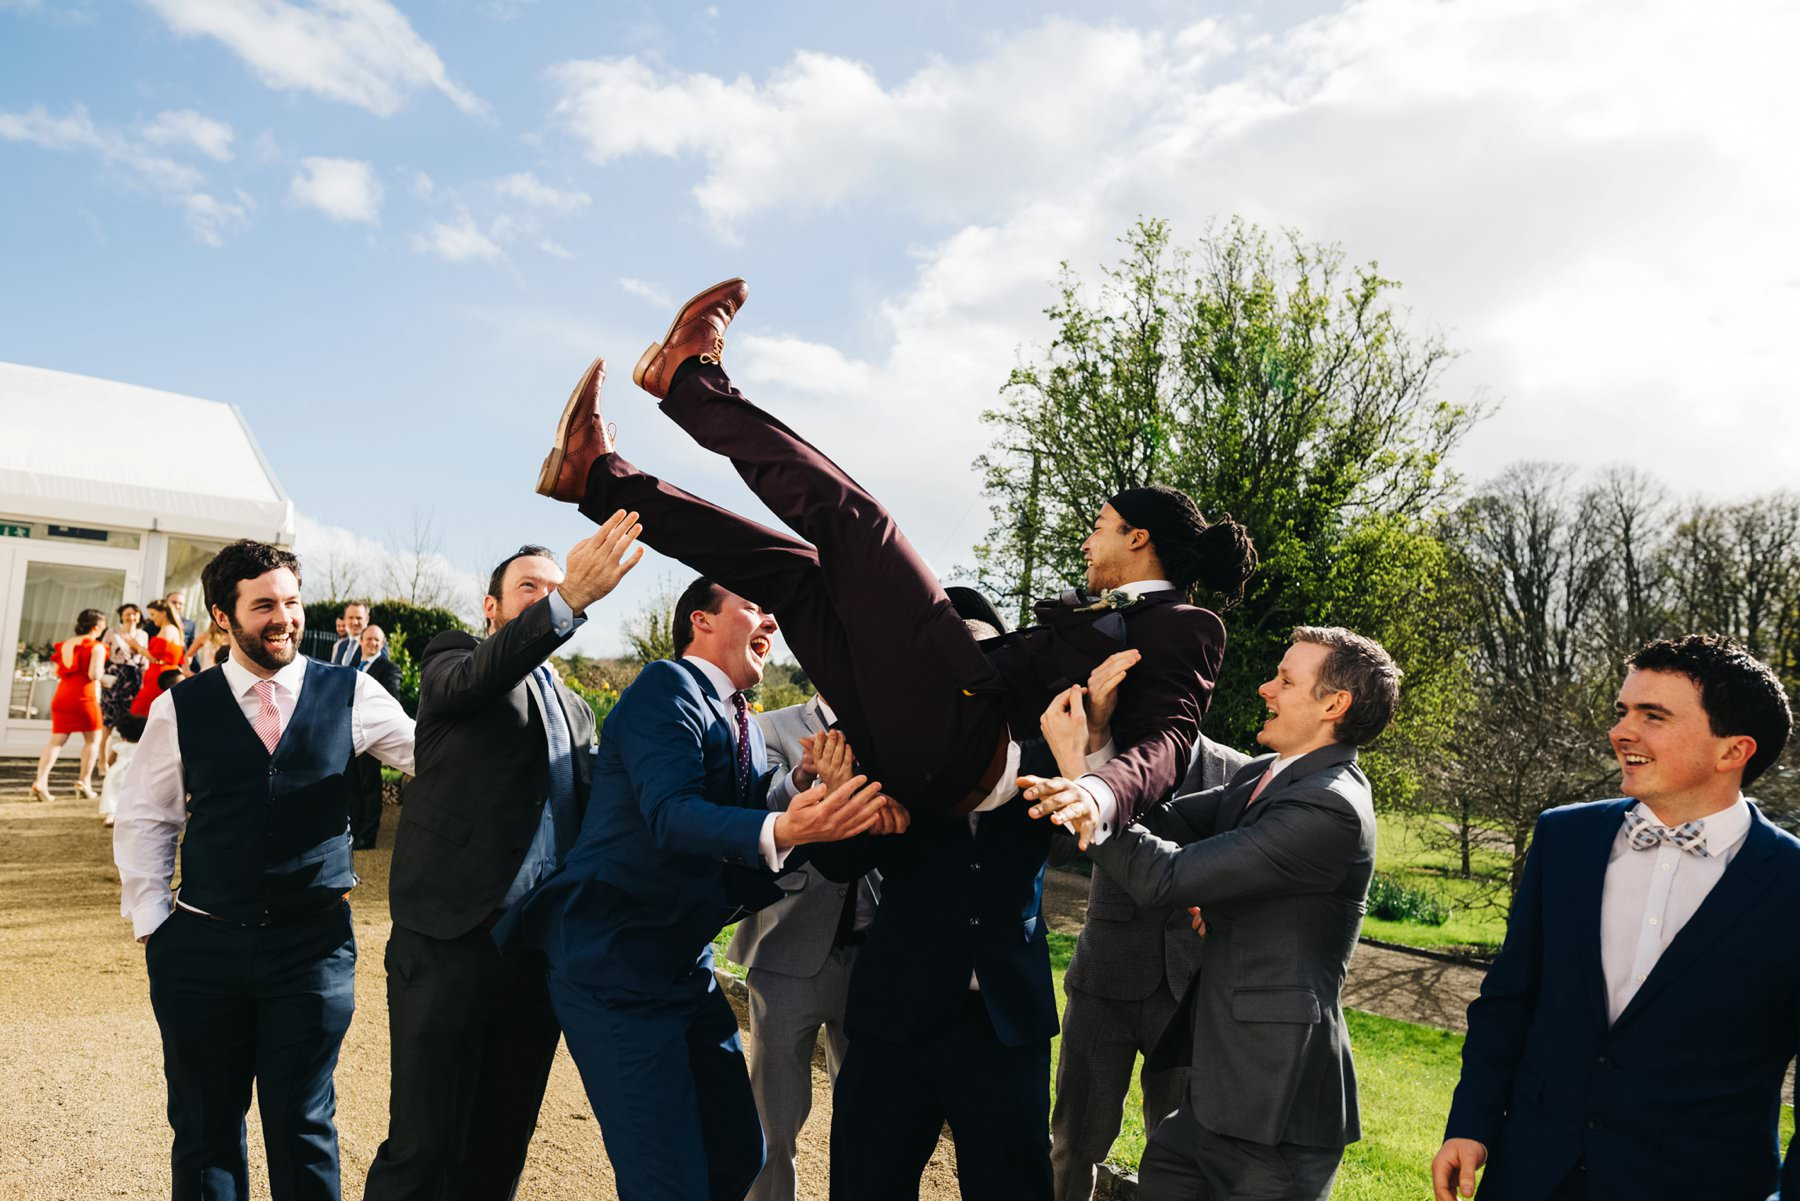 groom thrown up in the air by friends wedding photography ireland